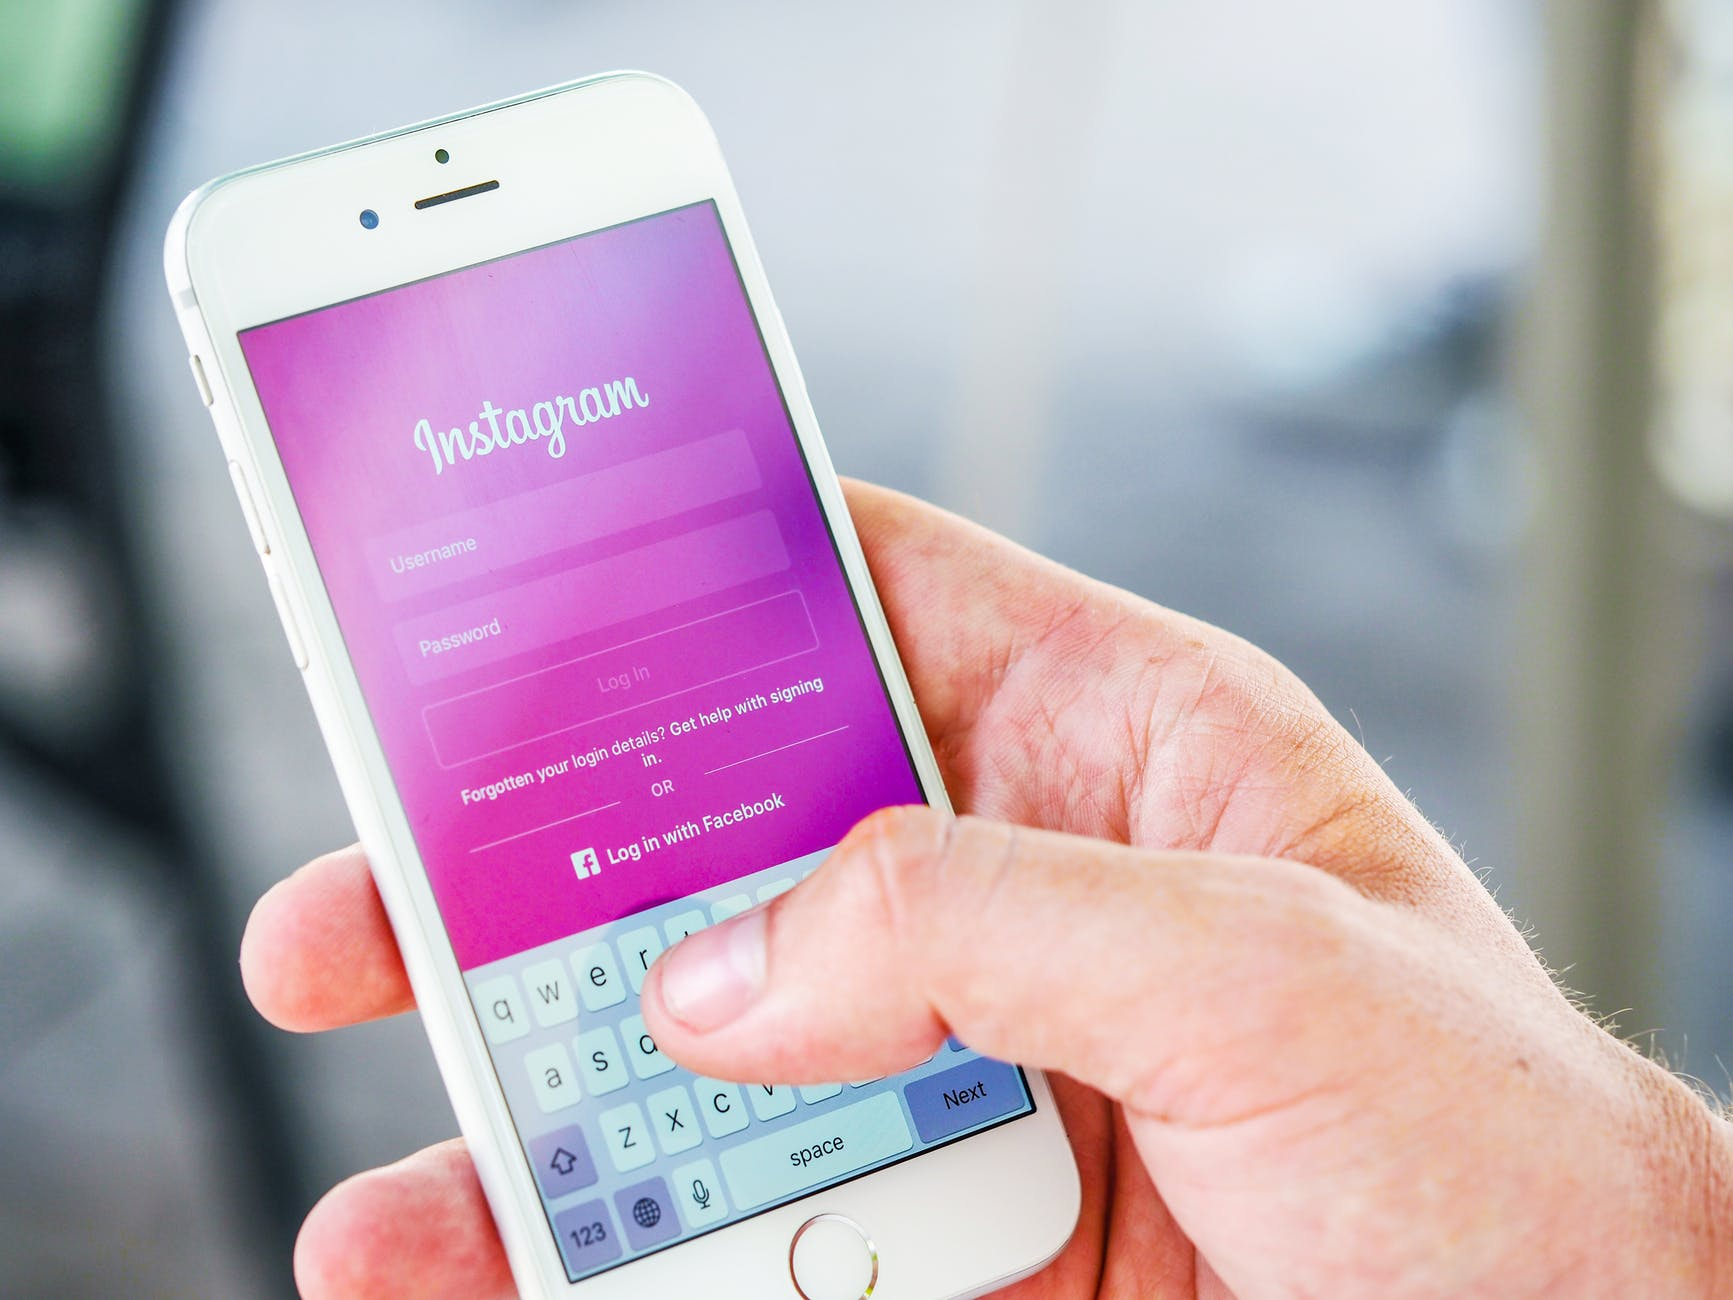 How to Start a Business on Instagram without an Website